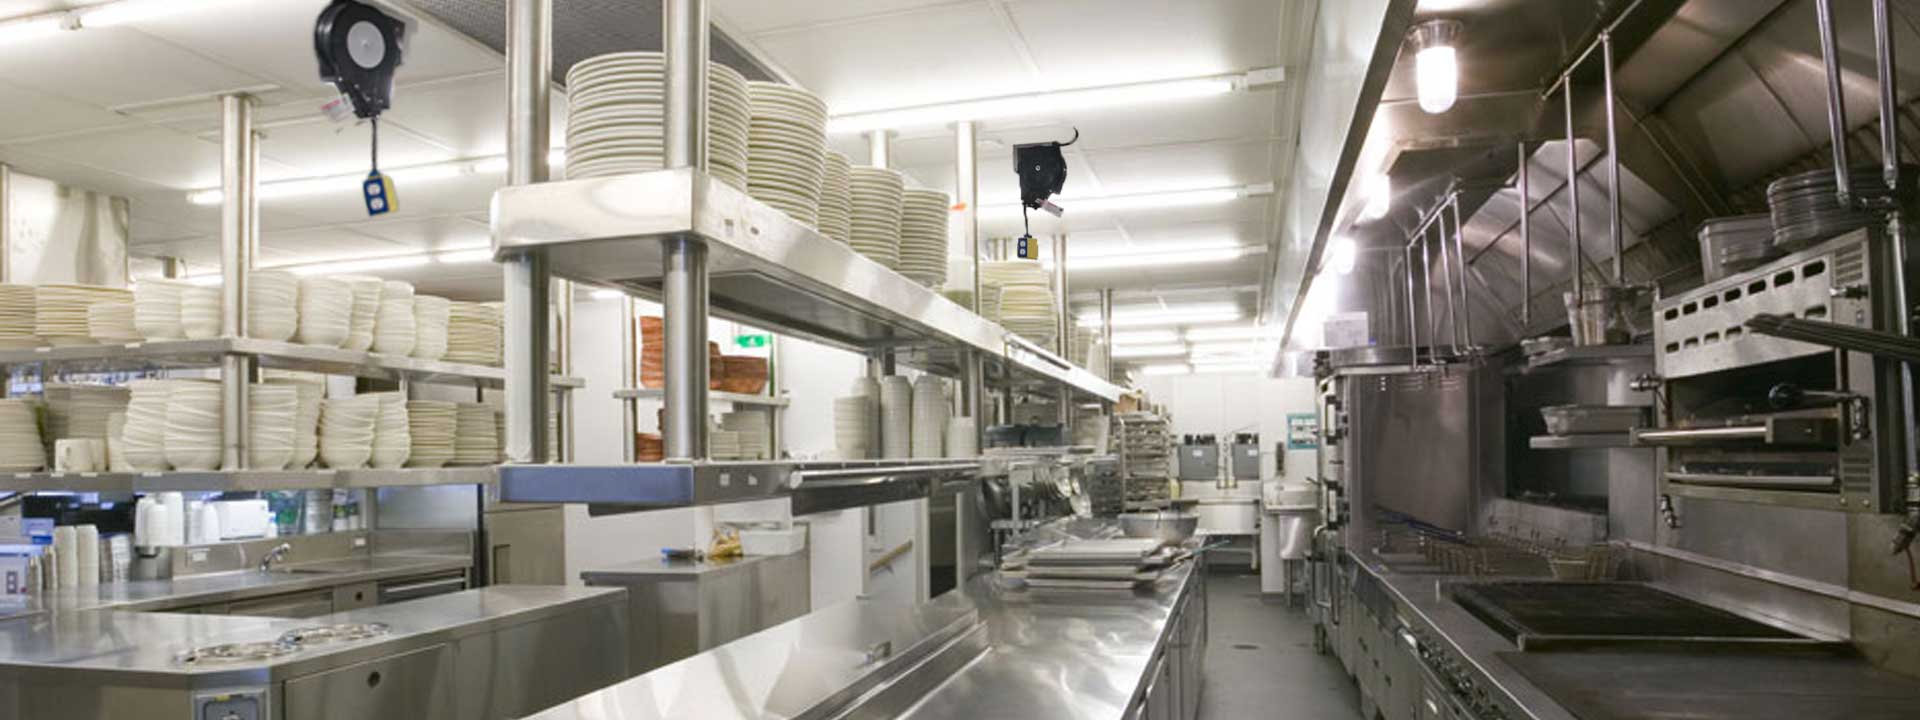 Commercial Kitchen Cord Reels For Drop Down Power! U2013 Kitchen ...